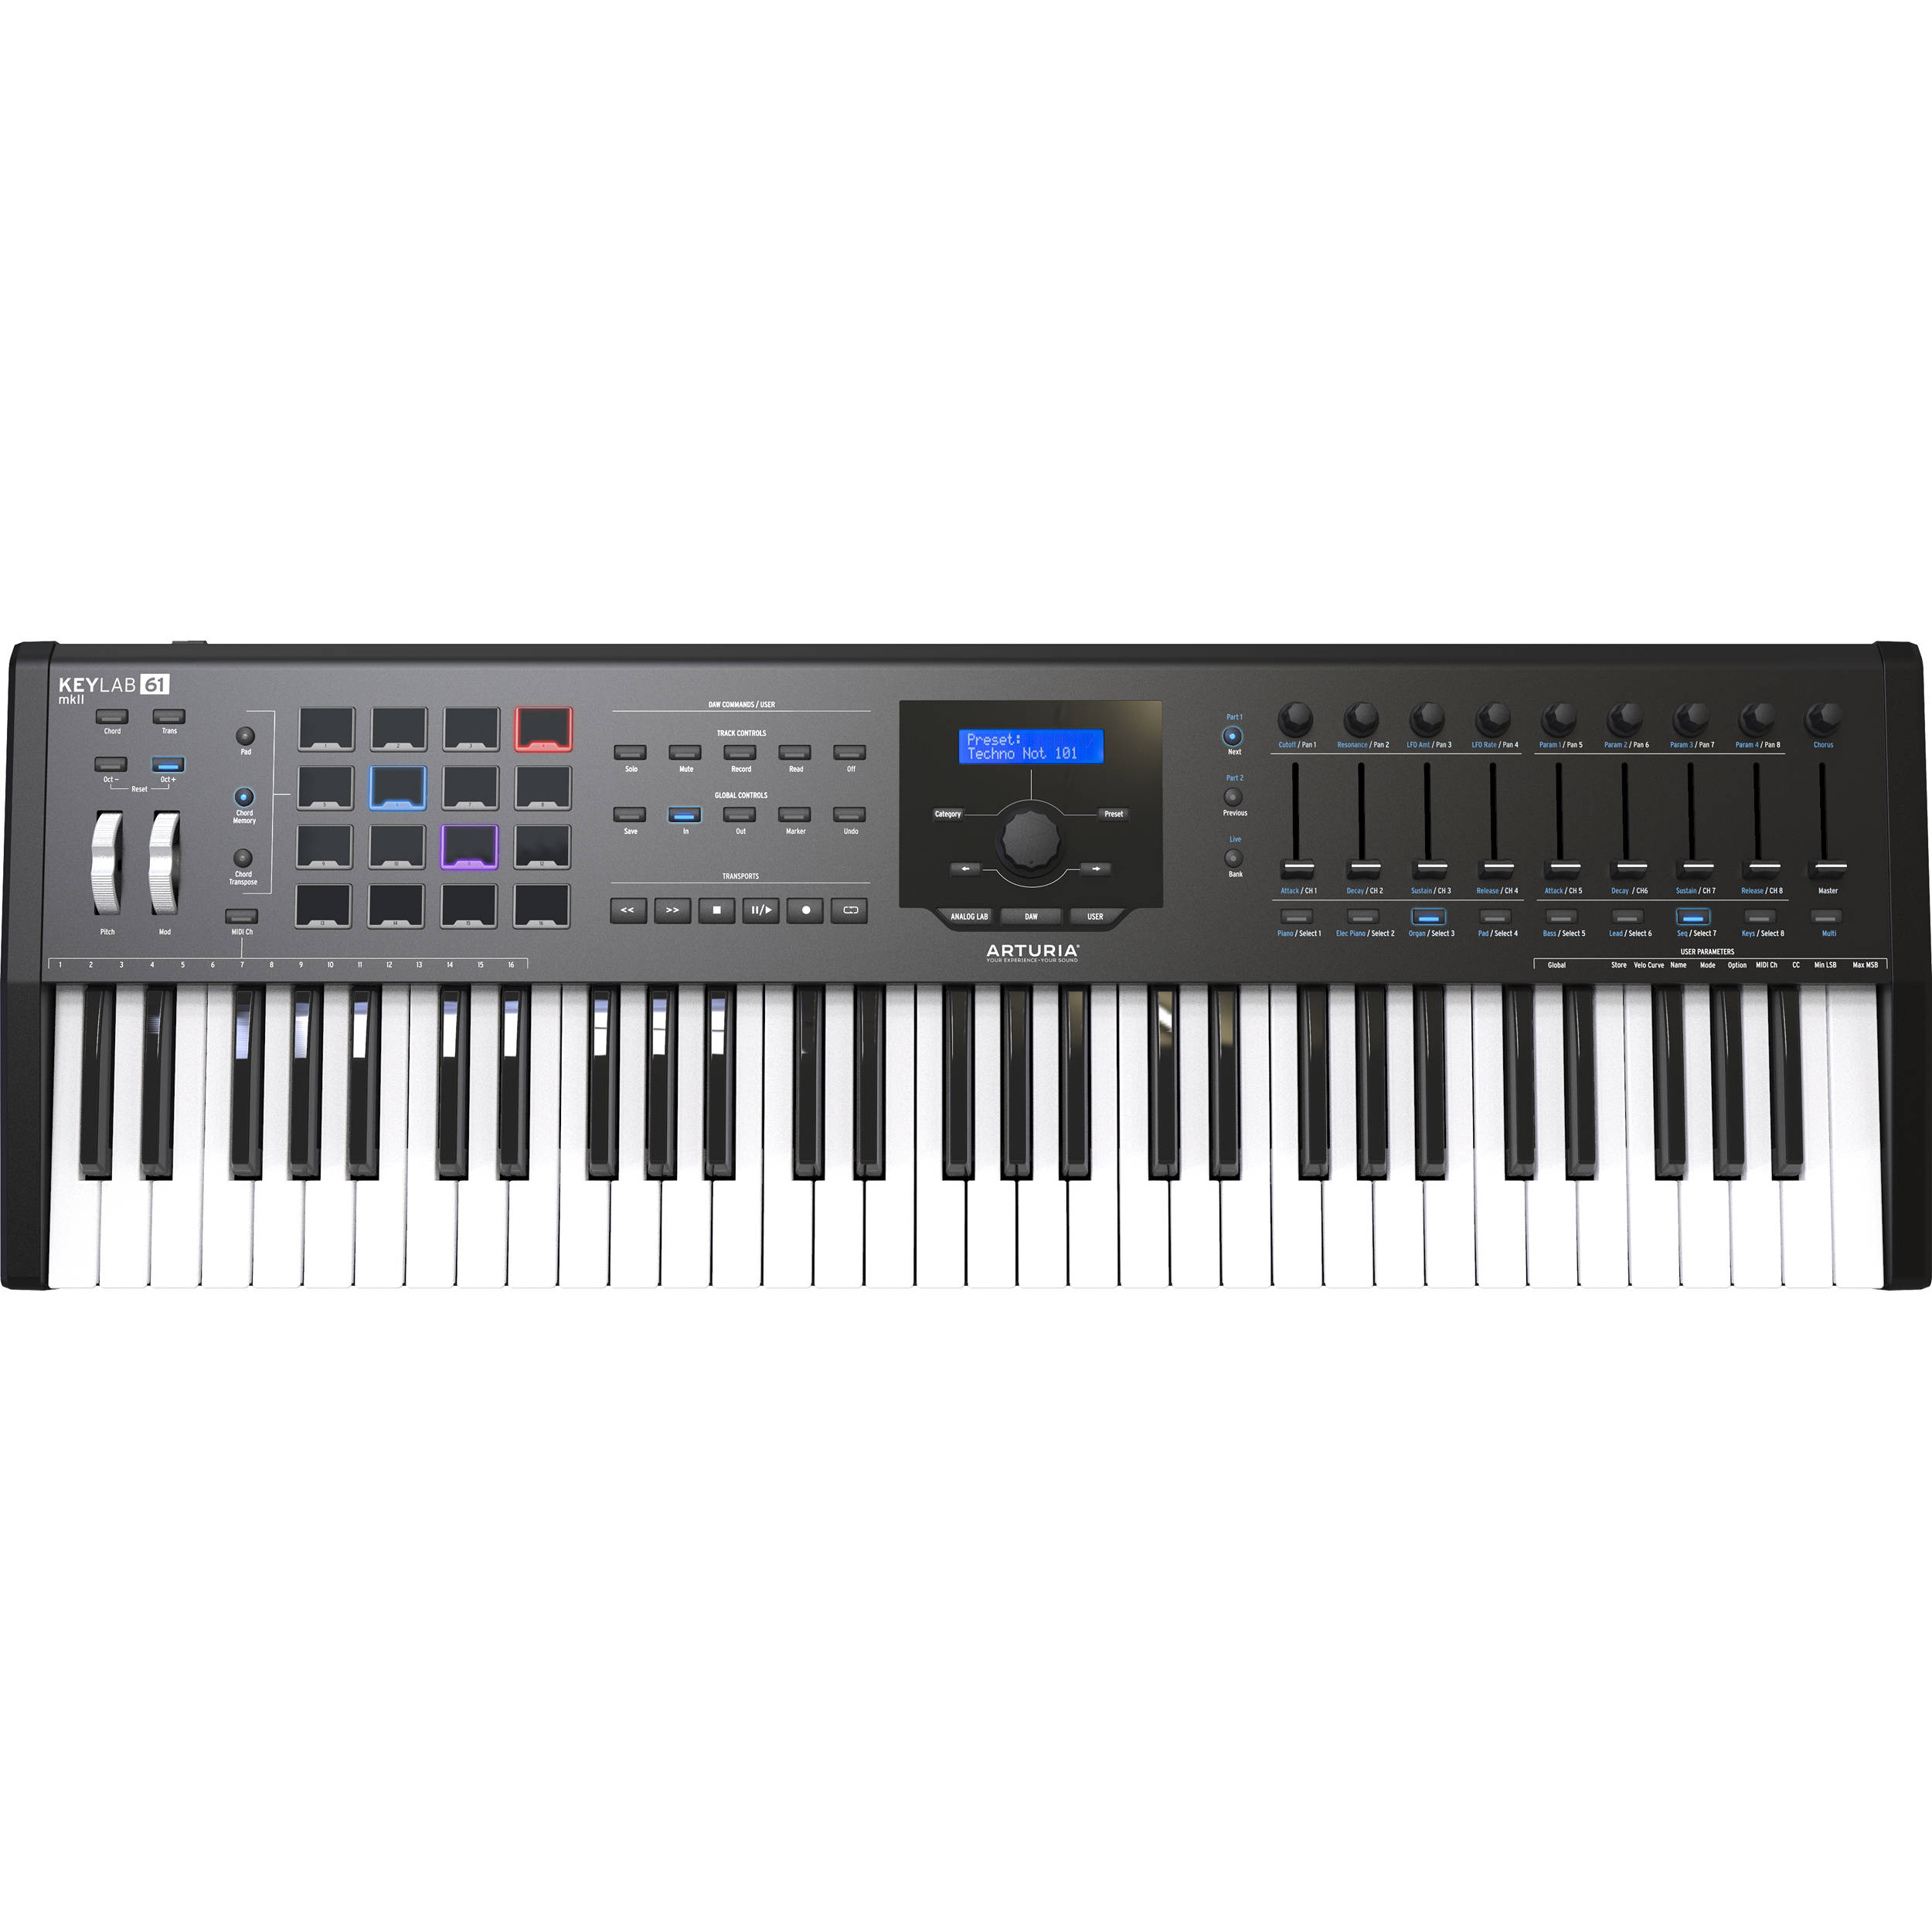 Arturia KeyLab mkII 61 Keyboard Controller - Black featuring 61-note MIDI Controller Keyboard with Aftertouch, 16 RGB Backlit Performance Pads, 9 Large Faders, 9 Rotary Encoders, 4 CV Outputs, 5 Expre